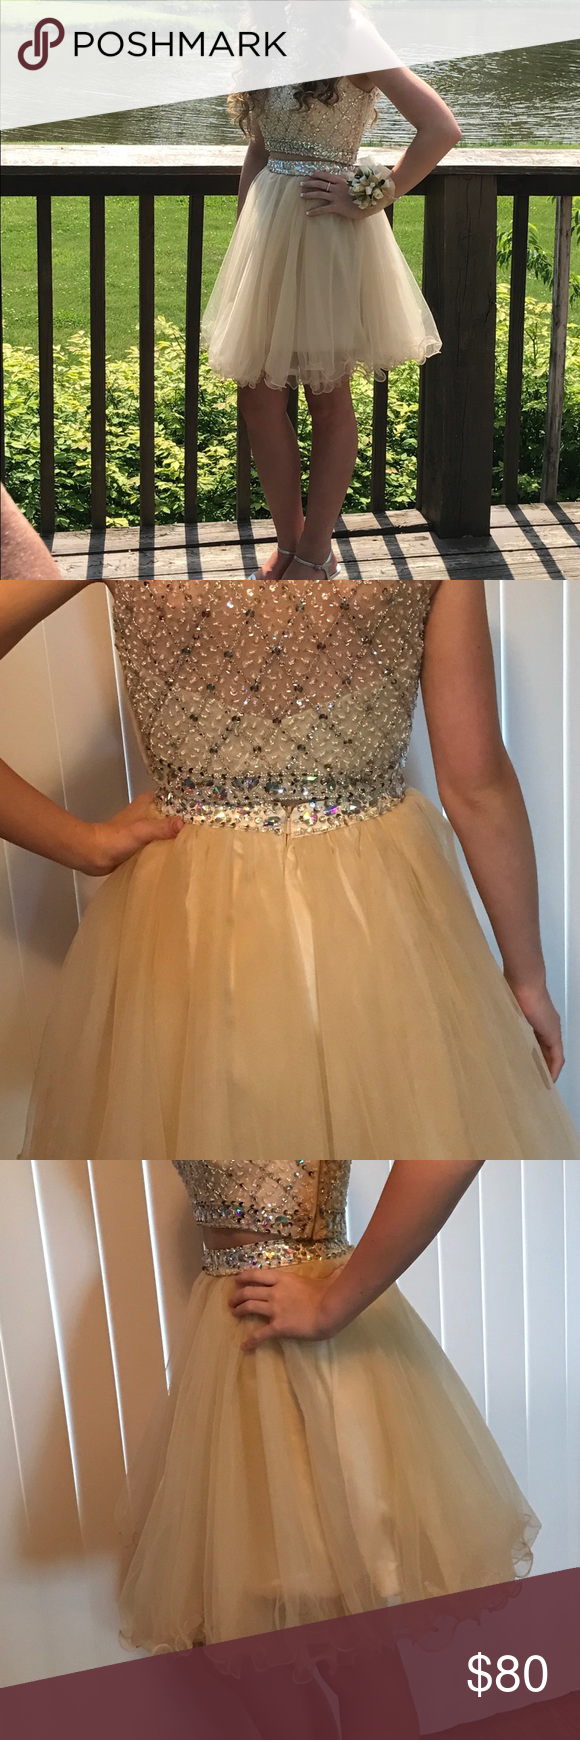 Champagne colored prom dress my posh picks pinterest champagne